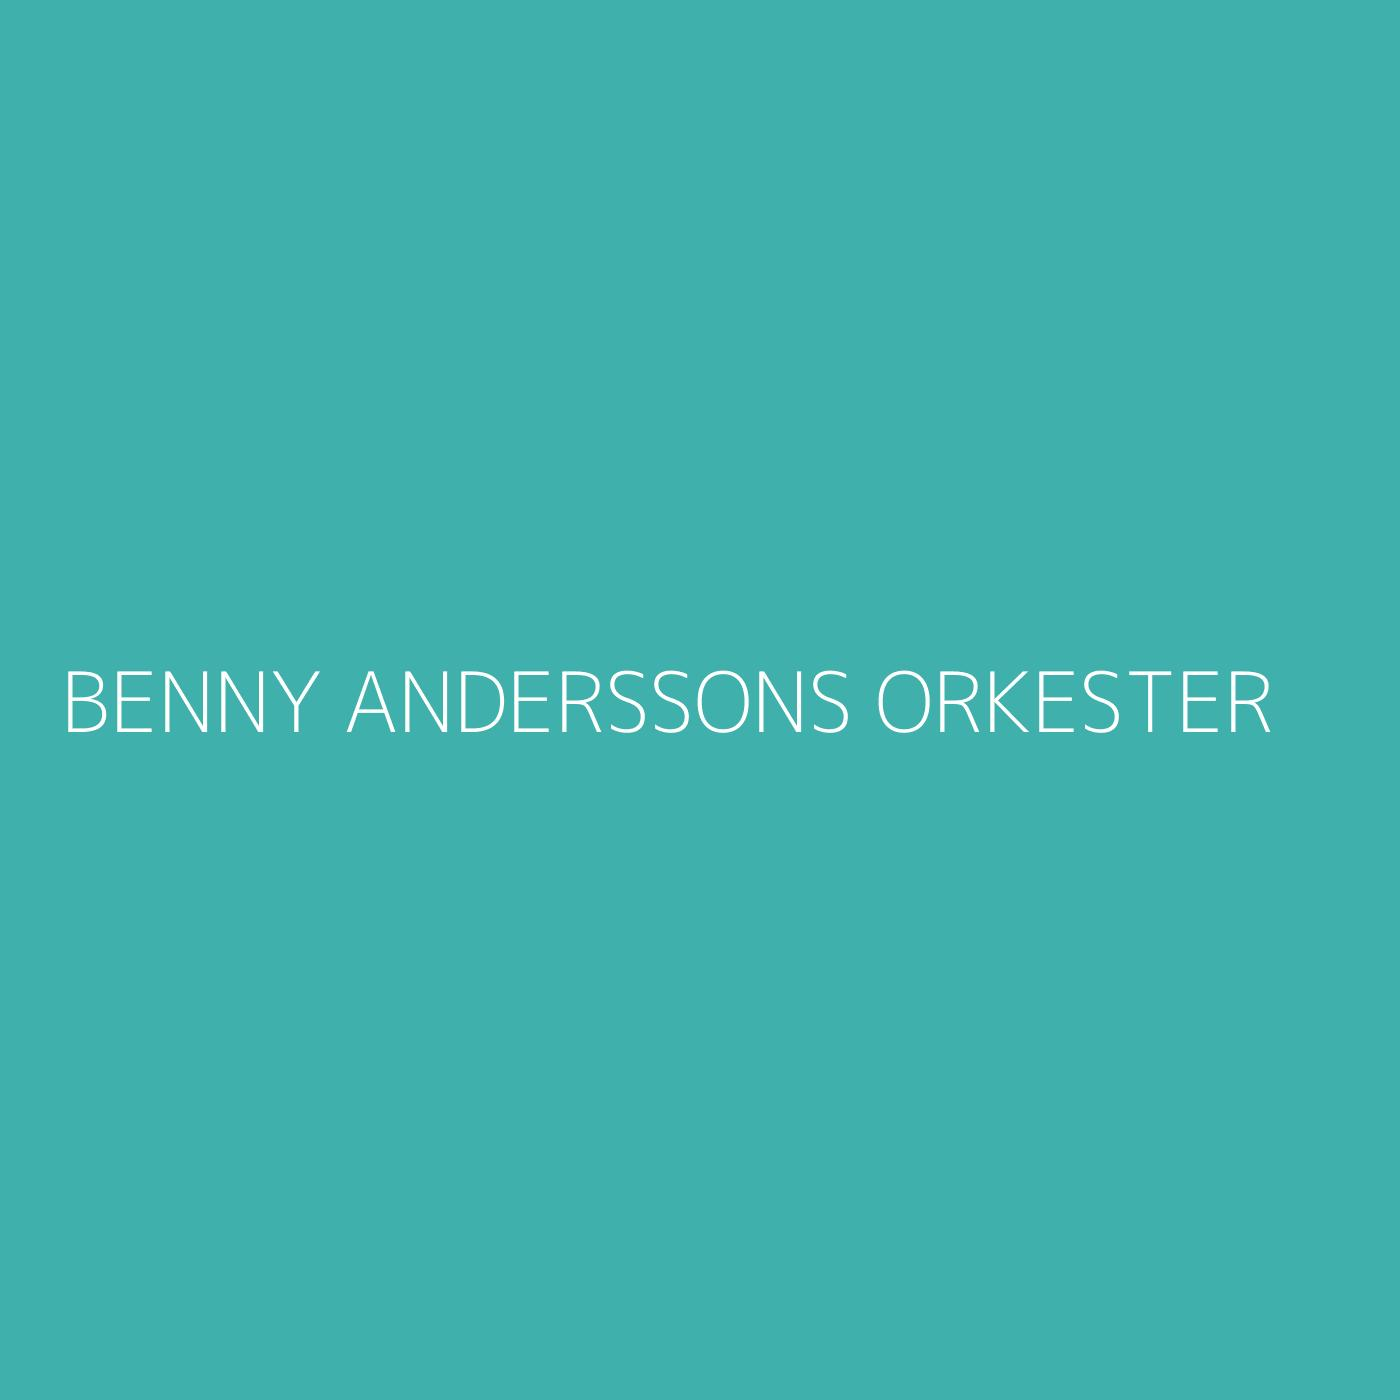 Benny Anderssons Orkester Playlist Artwork